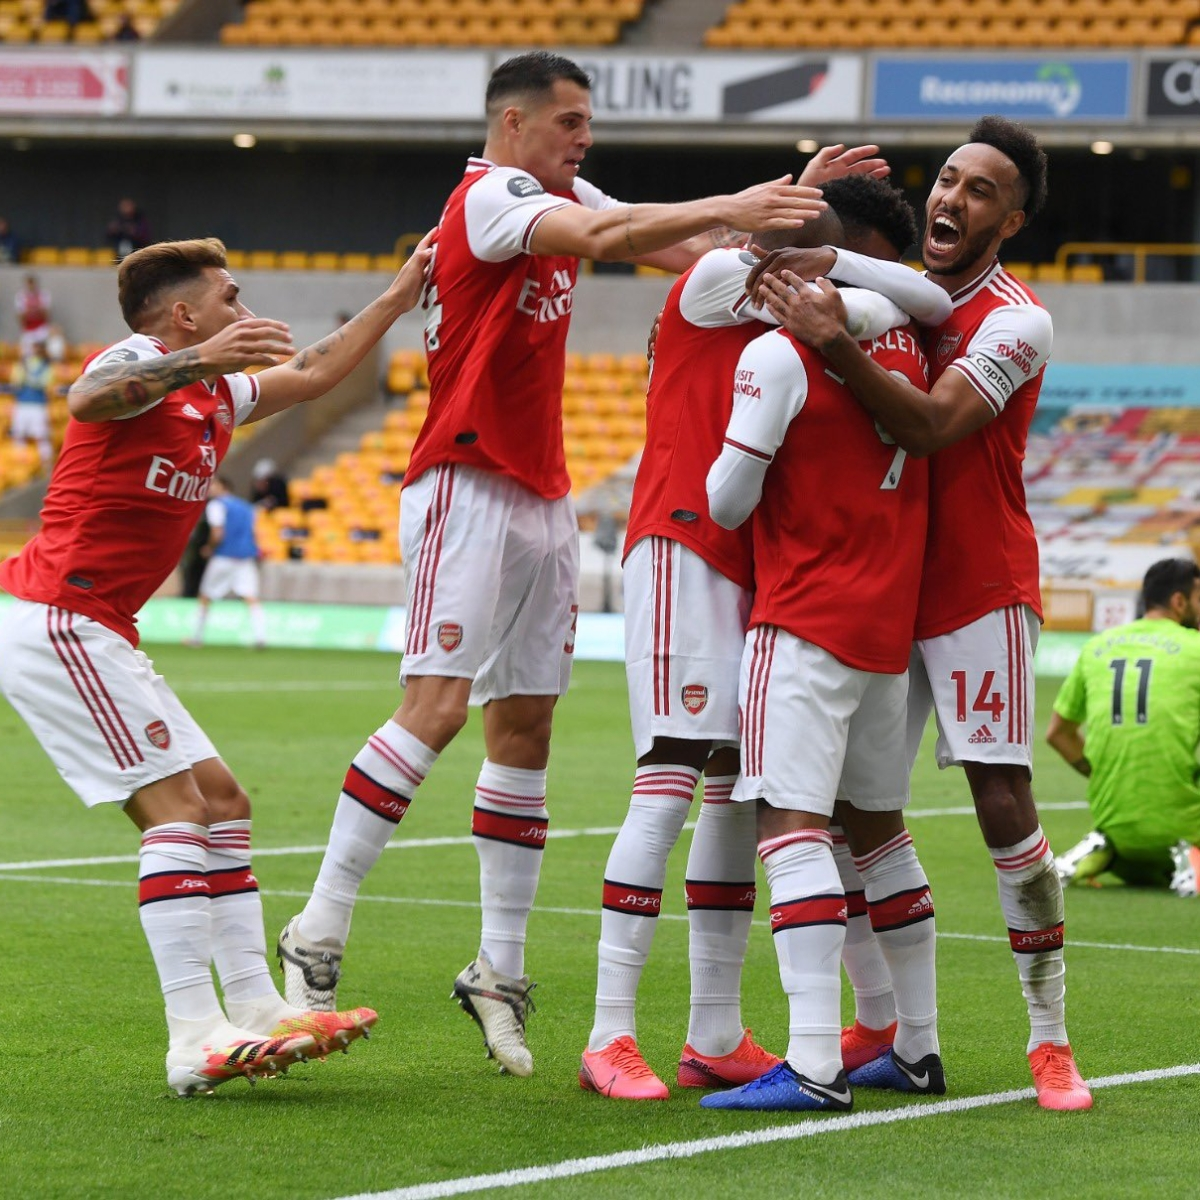 Premier League Highlights: Wolves' European hopes dealt a setback with 2-0 loss to Arsenal